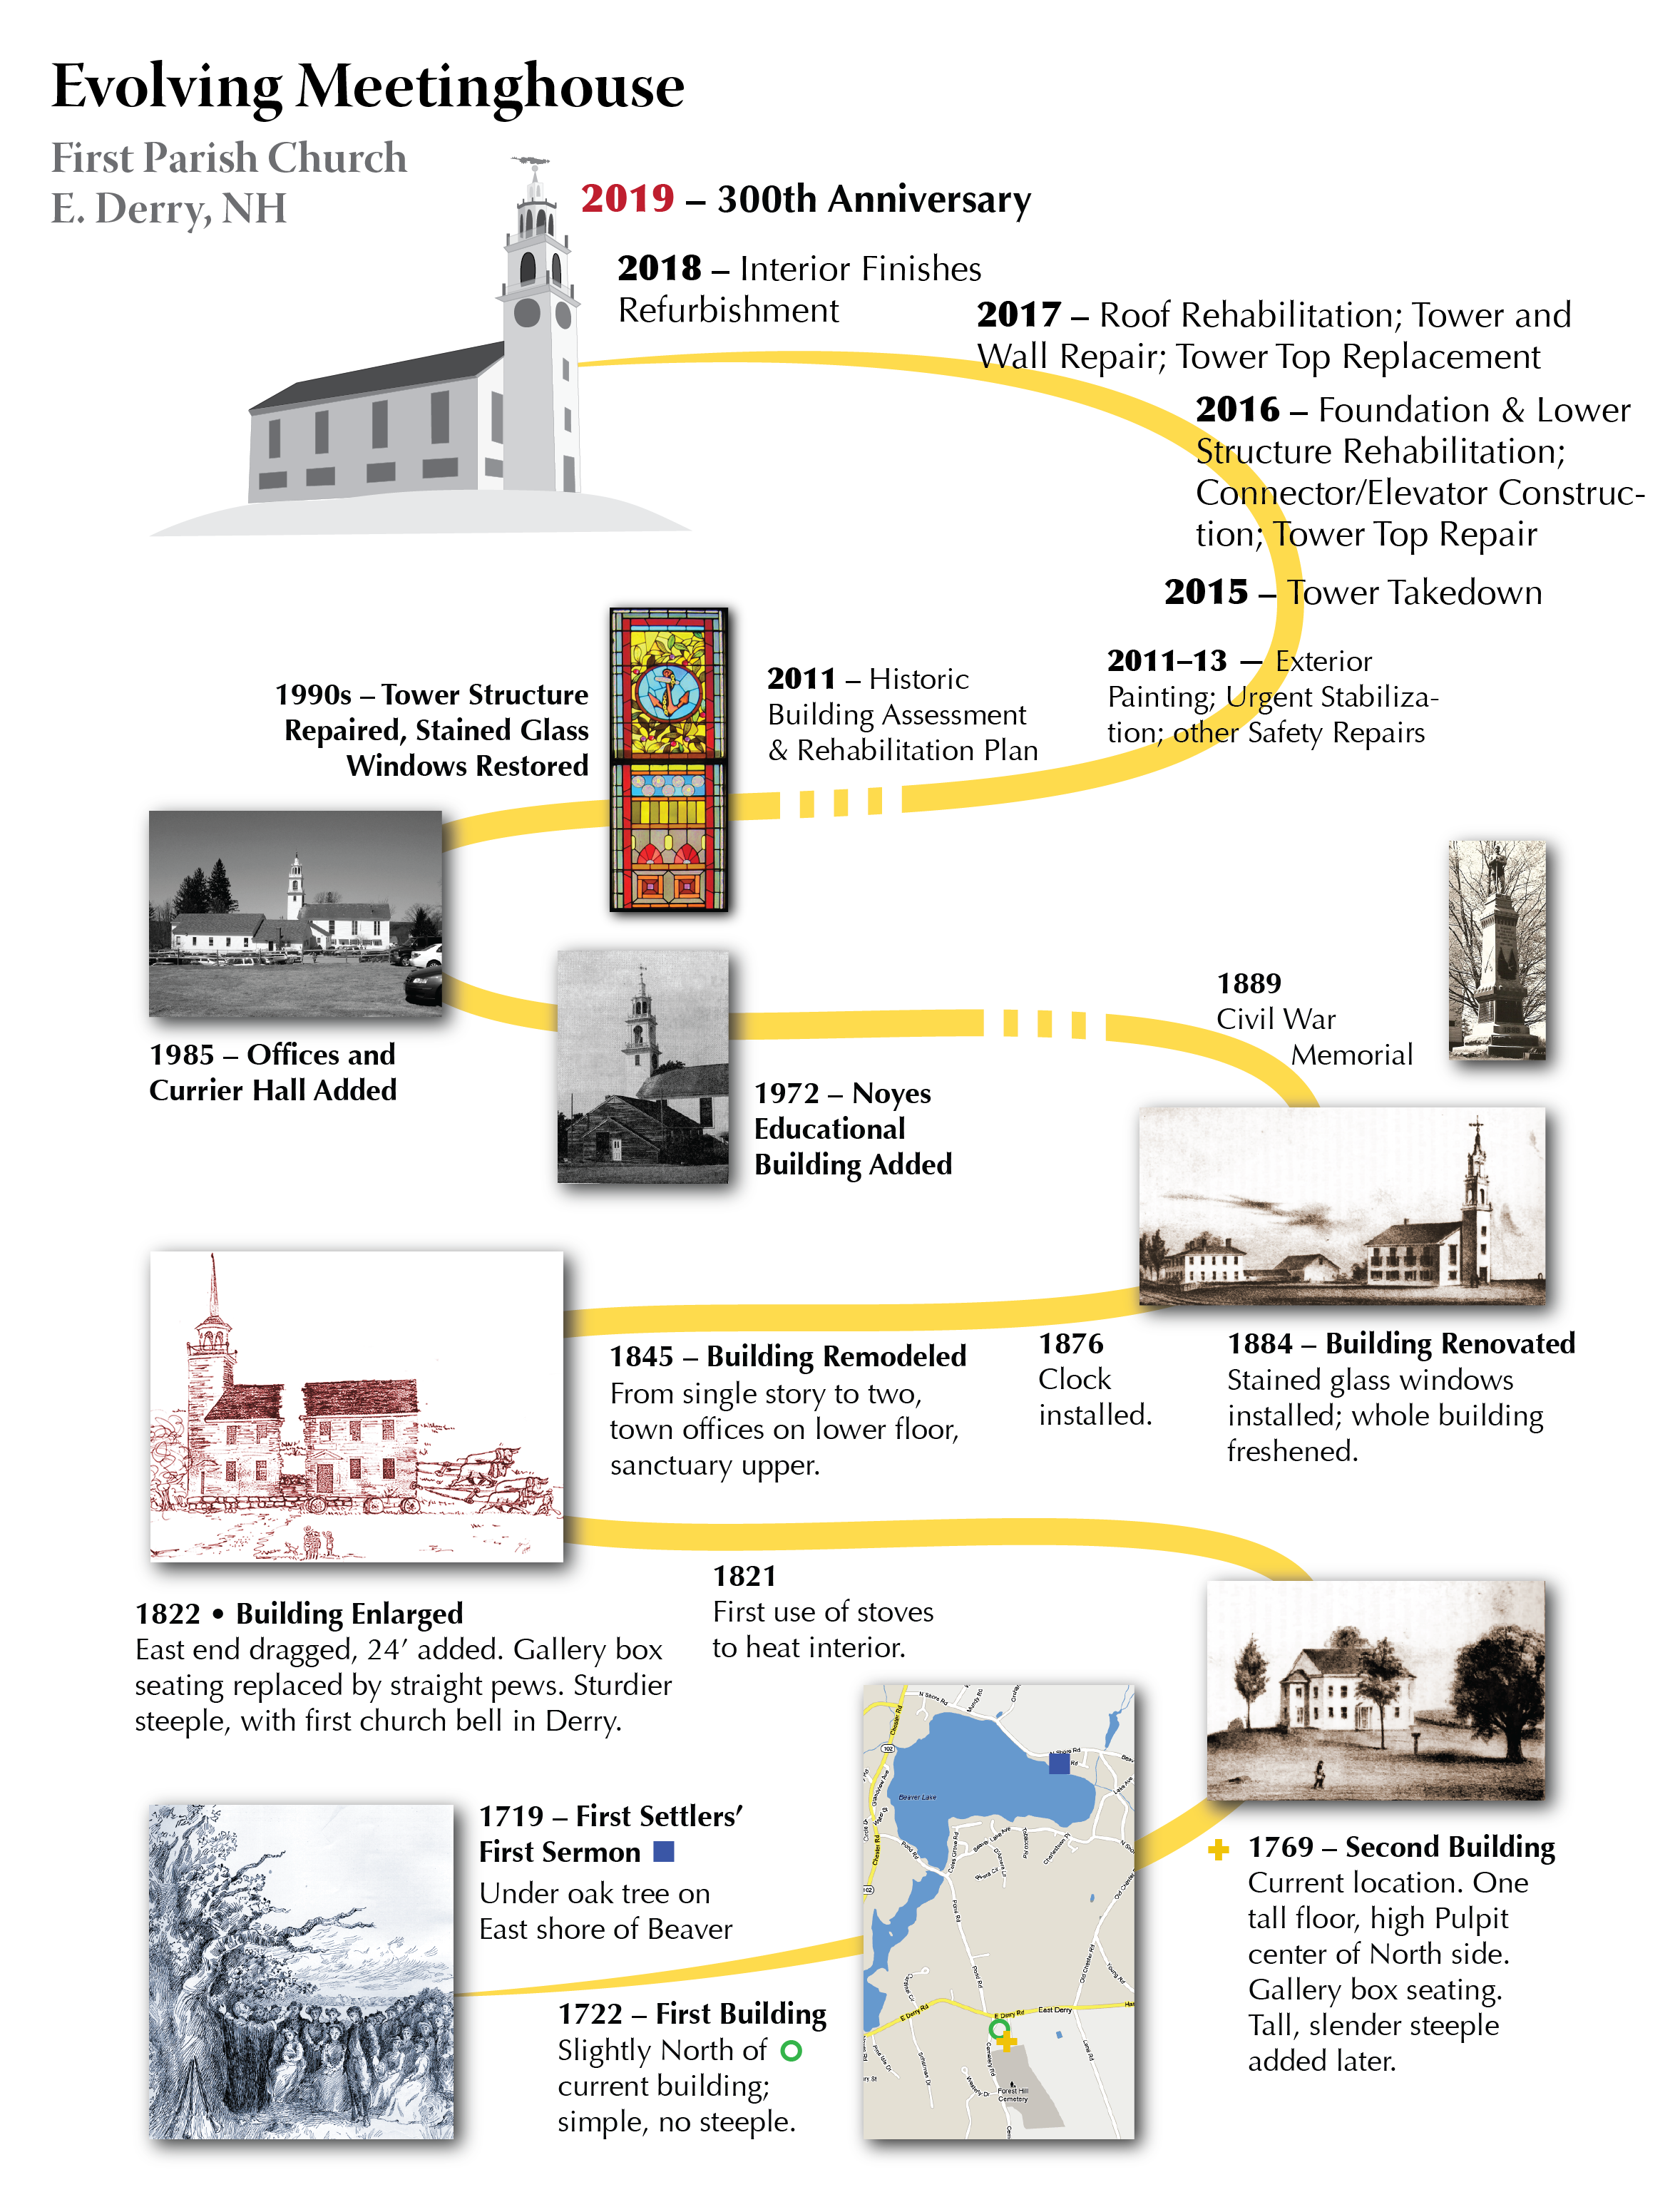 Key milestones in the history of the FPC Meetinghouse (click on the image to see it larger).